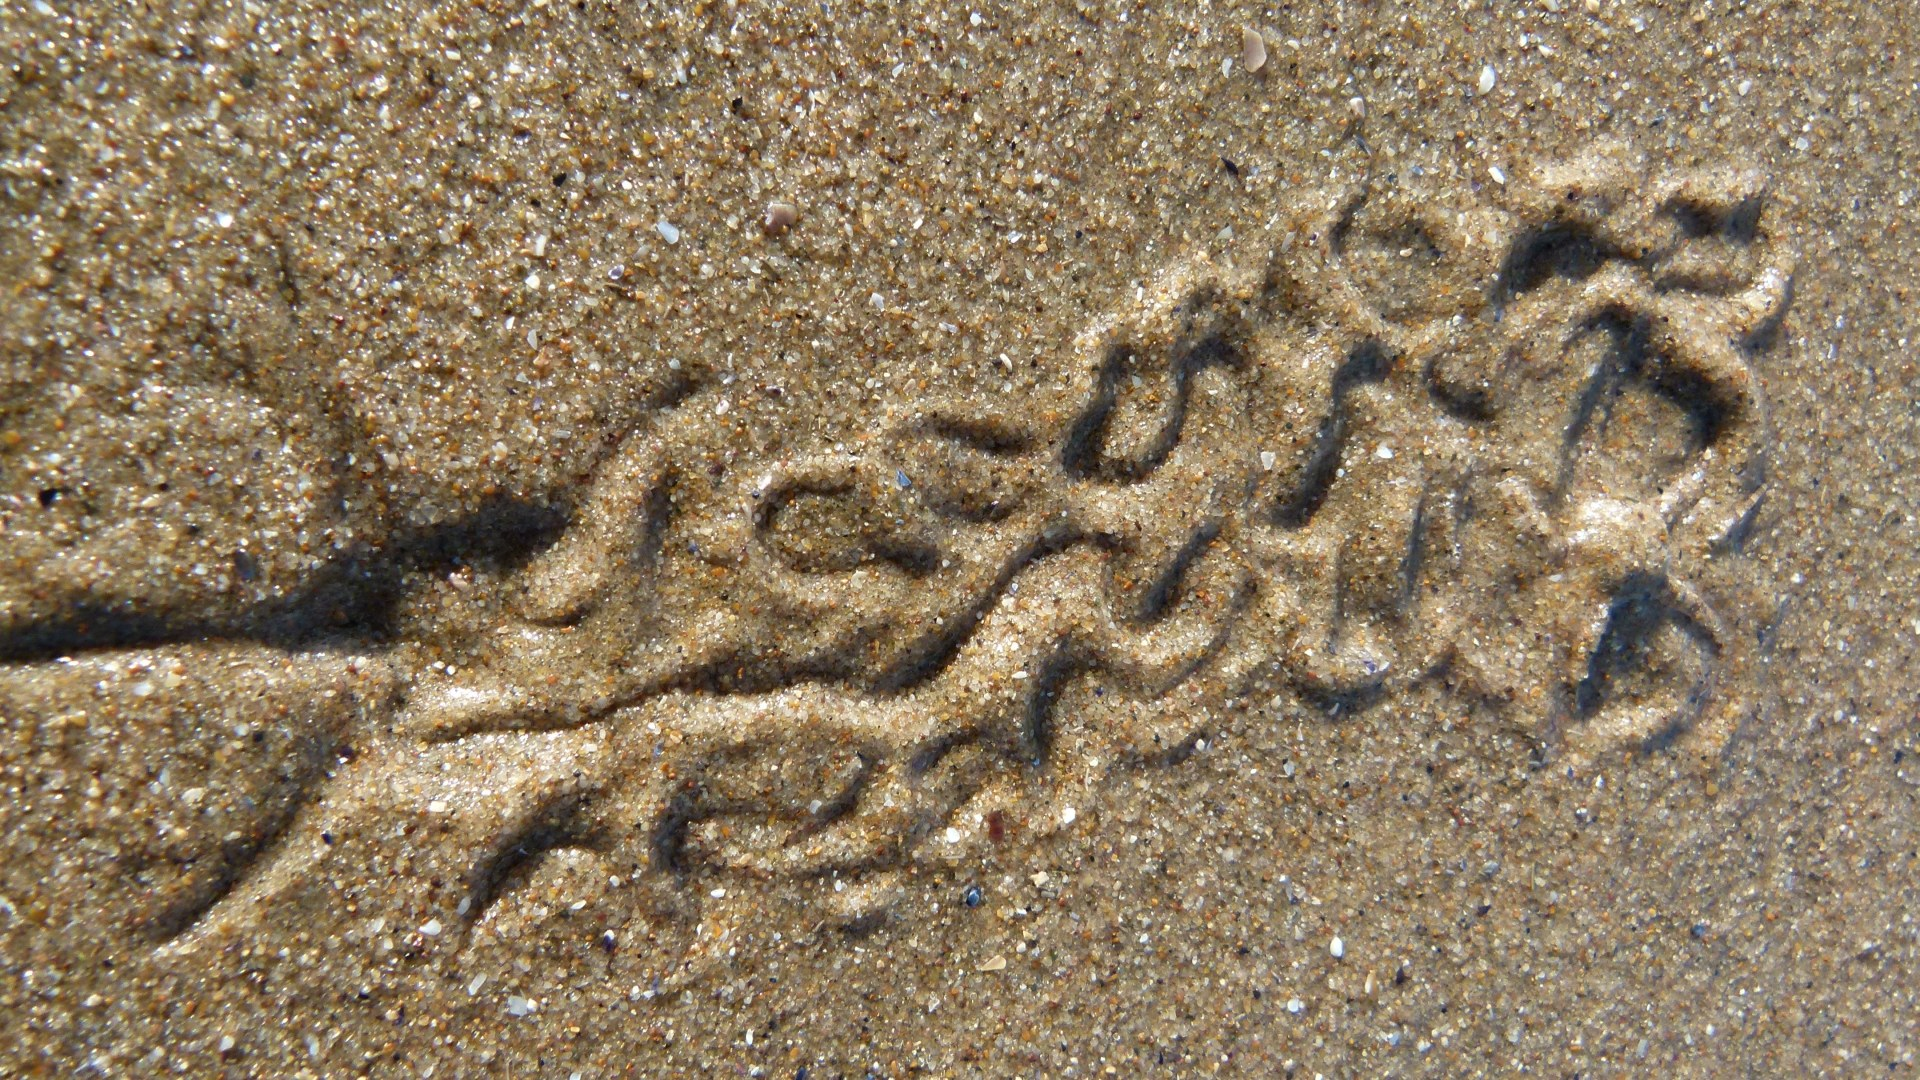 Tracks and traces on seashore sand